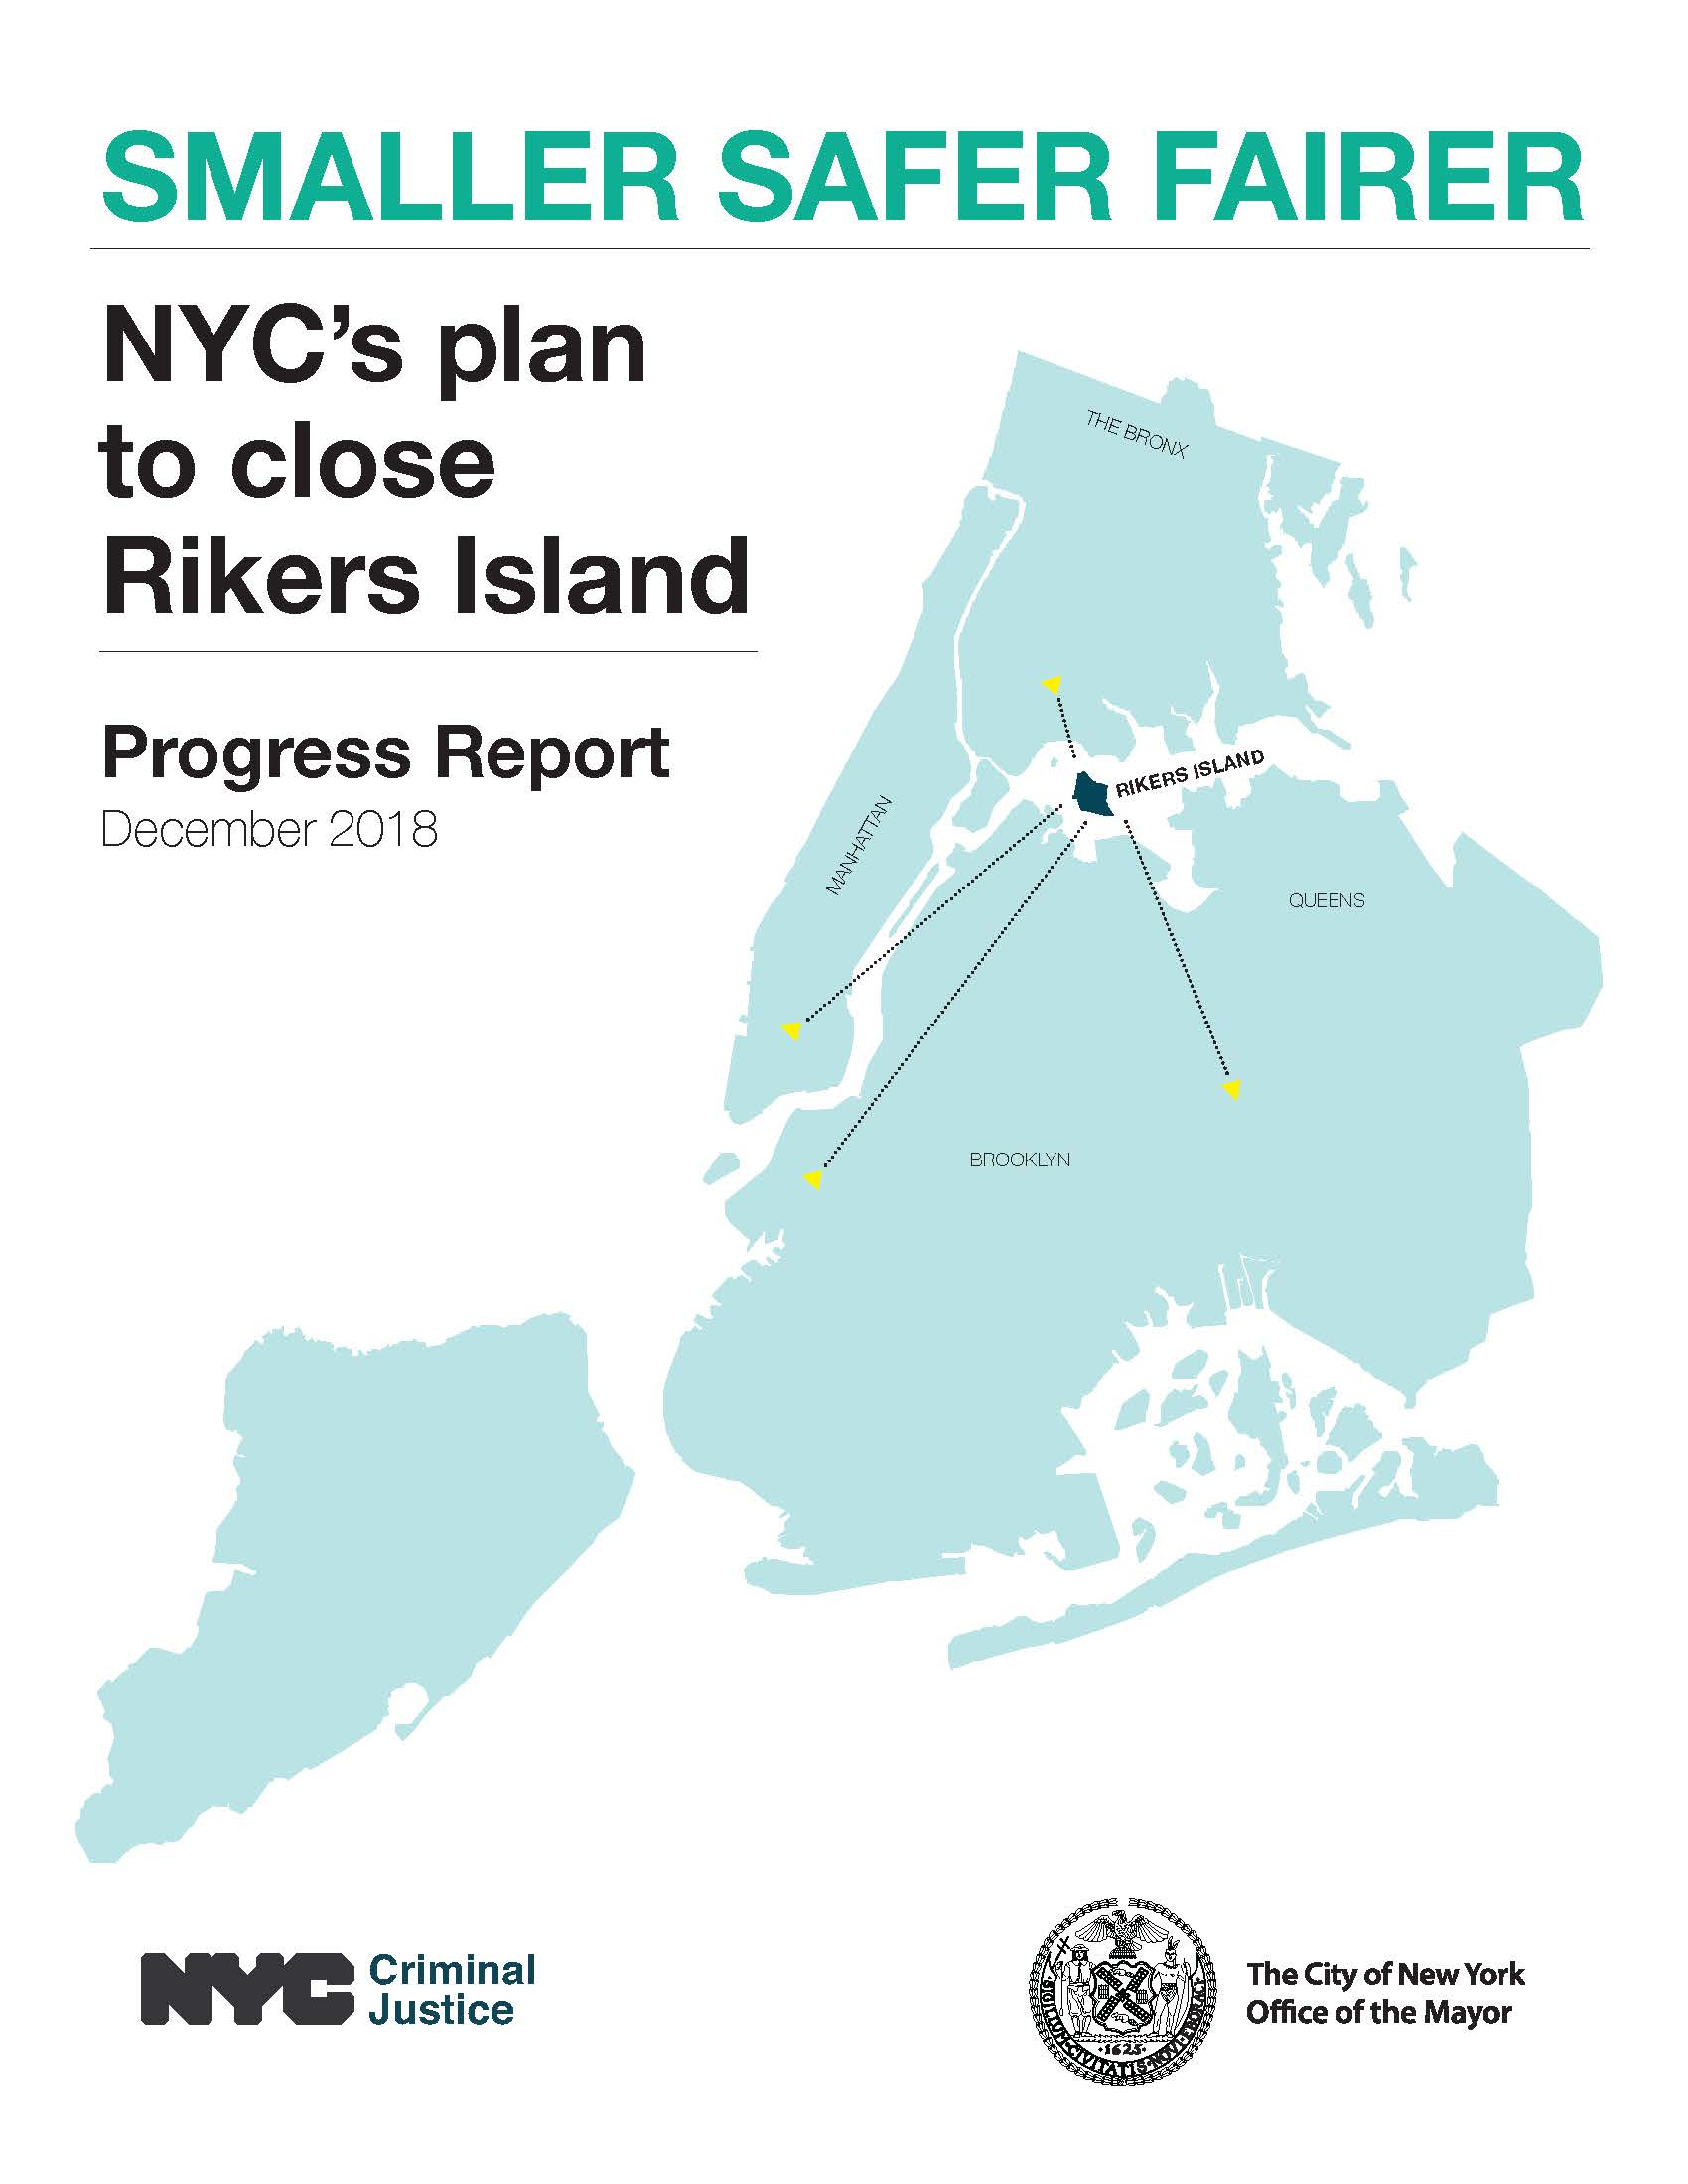 Front cover of Smaller Safer Fairer, Progress Report on New York City's Plan to Close Rikers Island